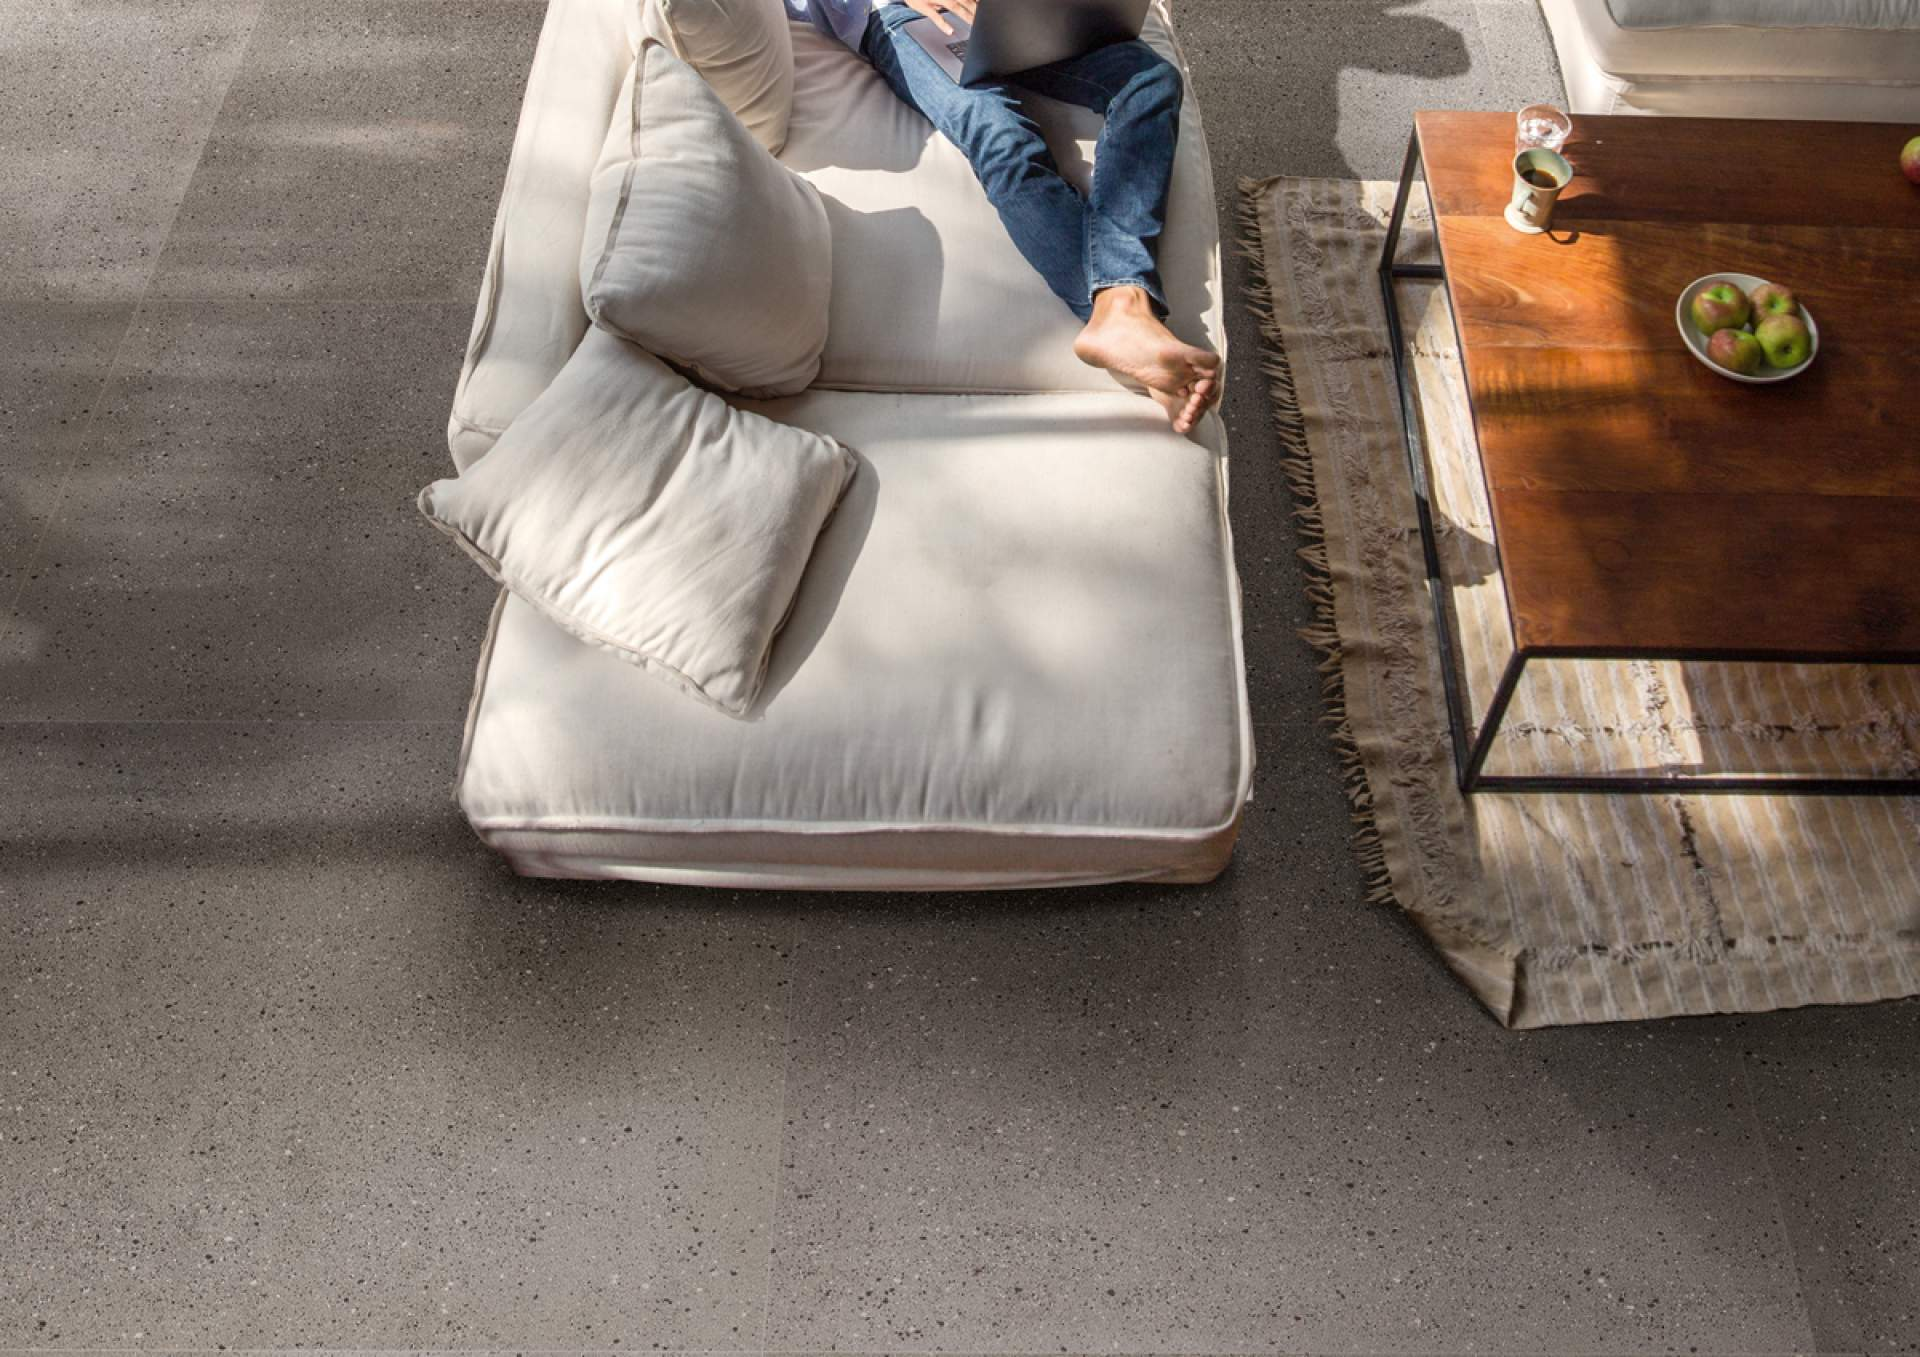 Technical Concrete living space setting with Grey Tile